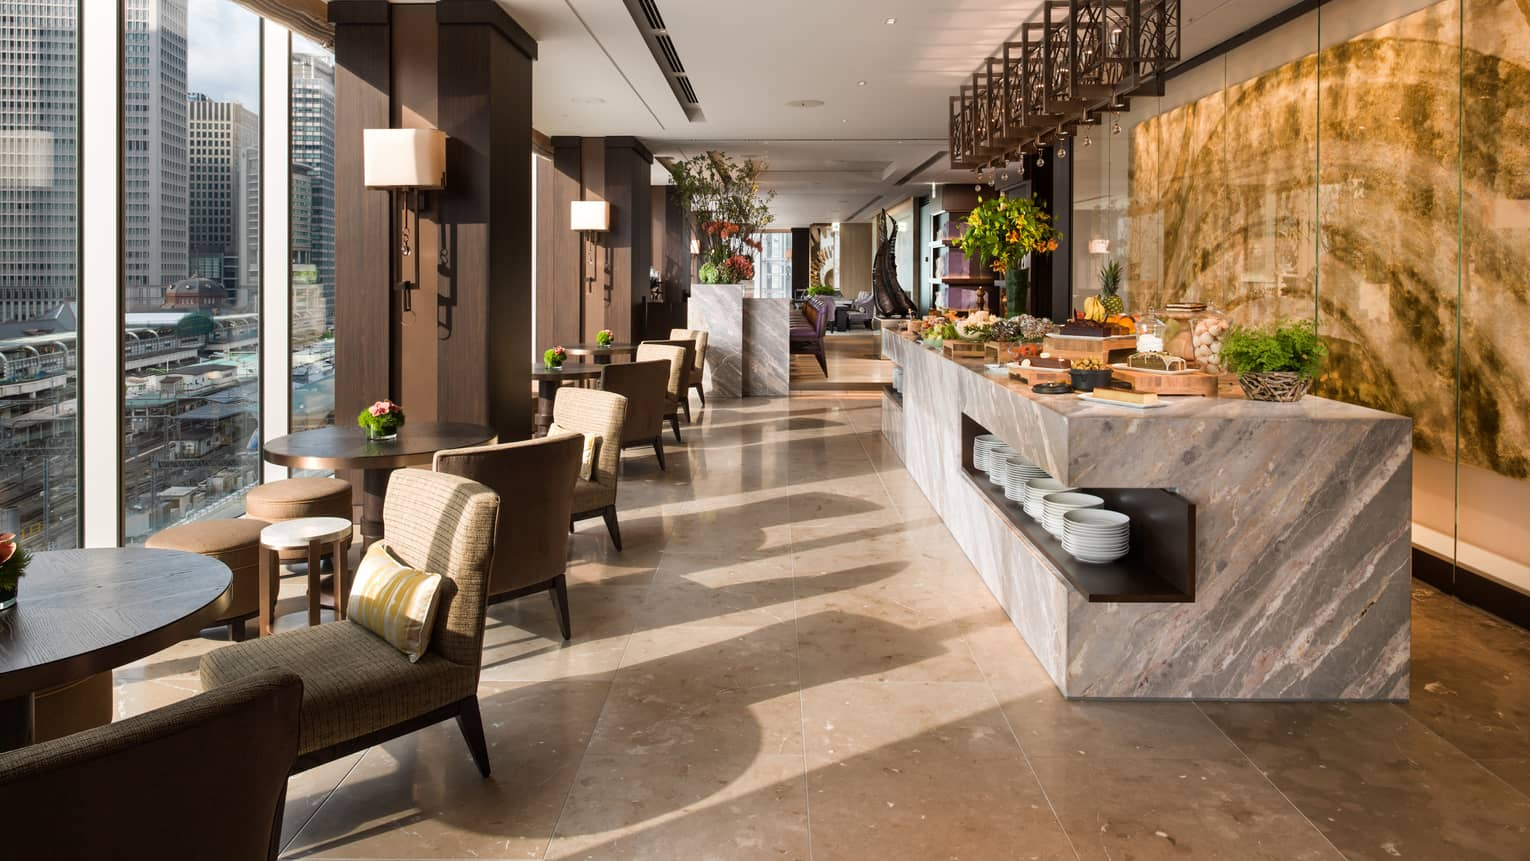 The Gastronomic Gallery with grey marble buffet, round lounge tables, chairs by sunny window